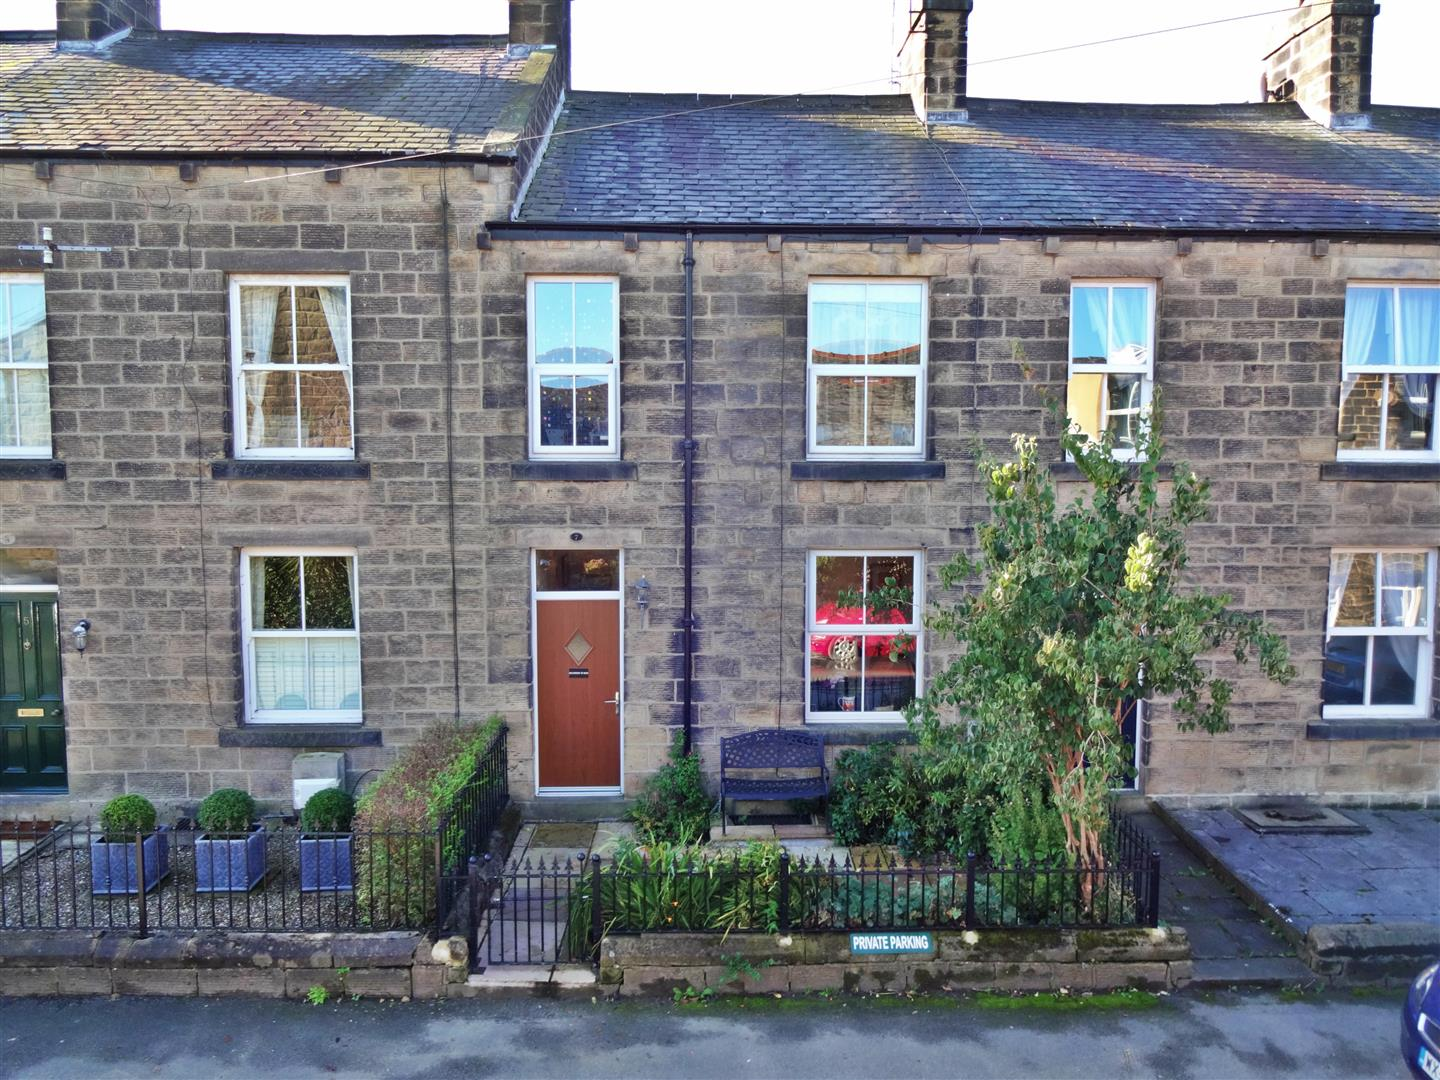 Booth Street, Ilkley, LS29 7HY